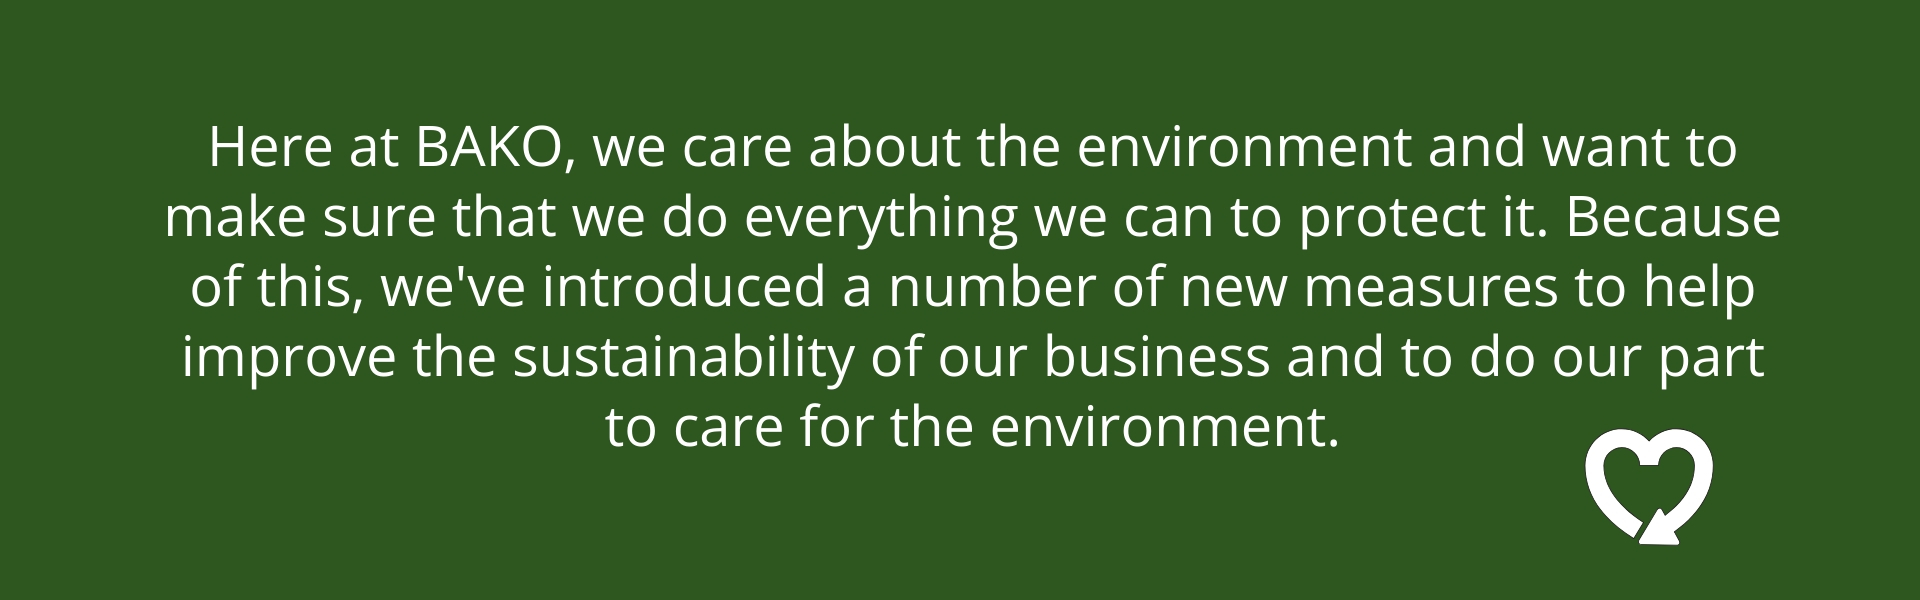 BAKO Sustainability and care for the envirnment